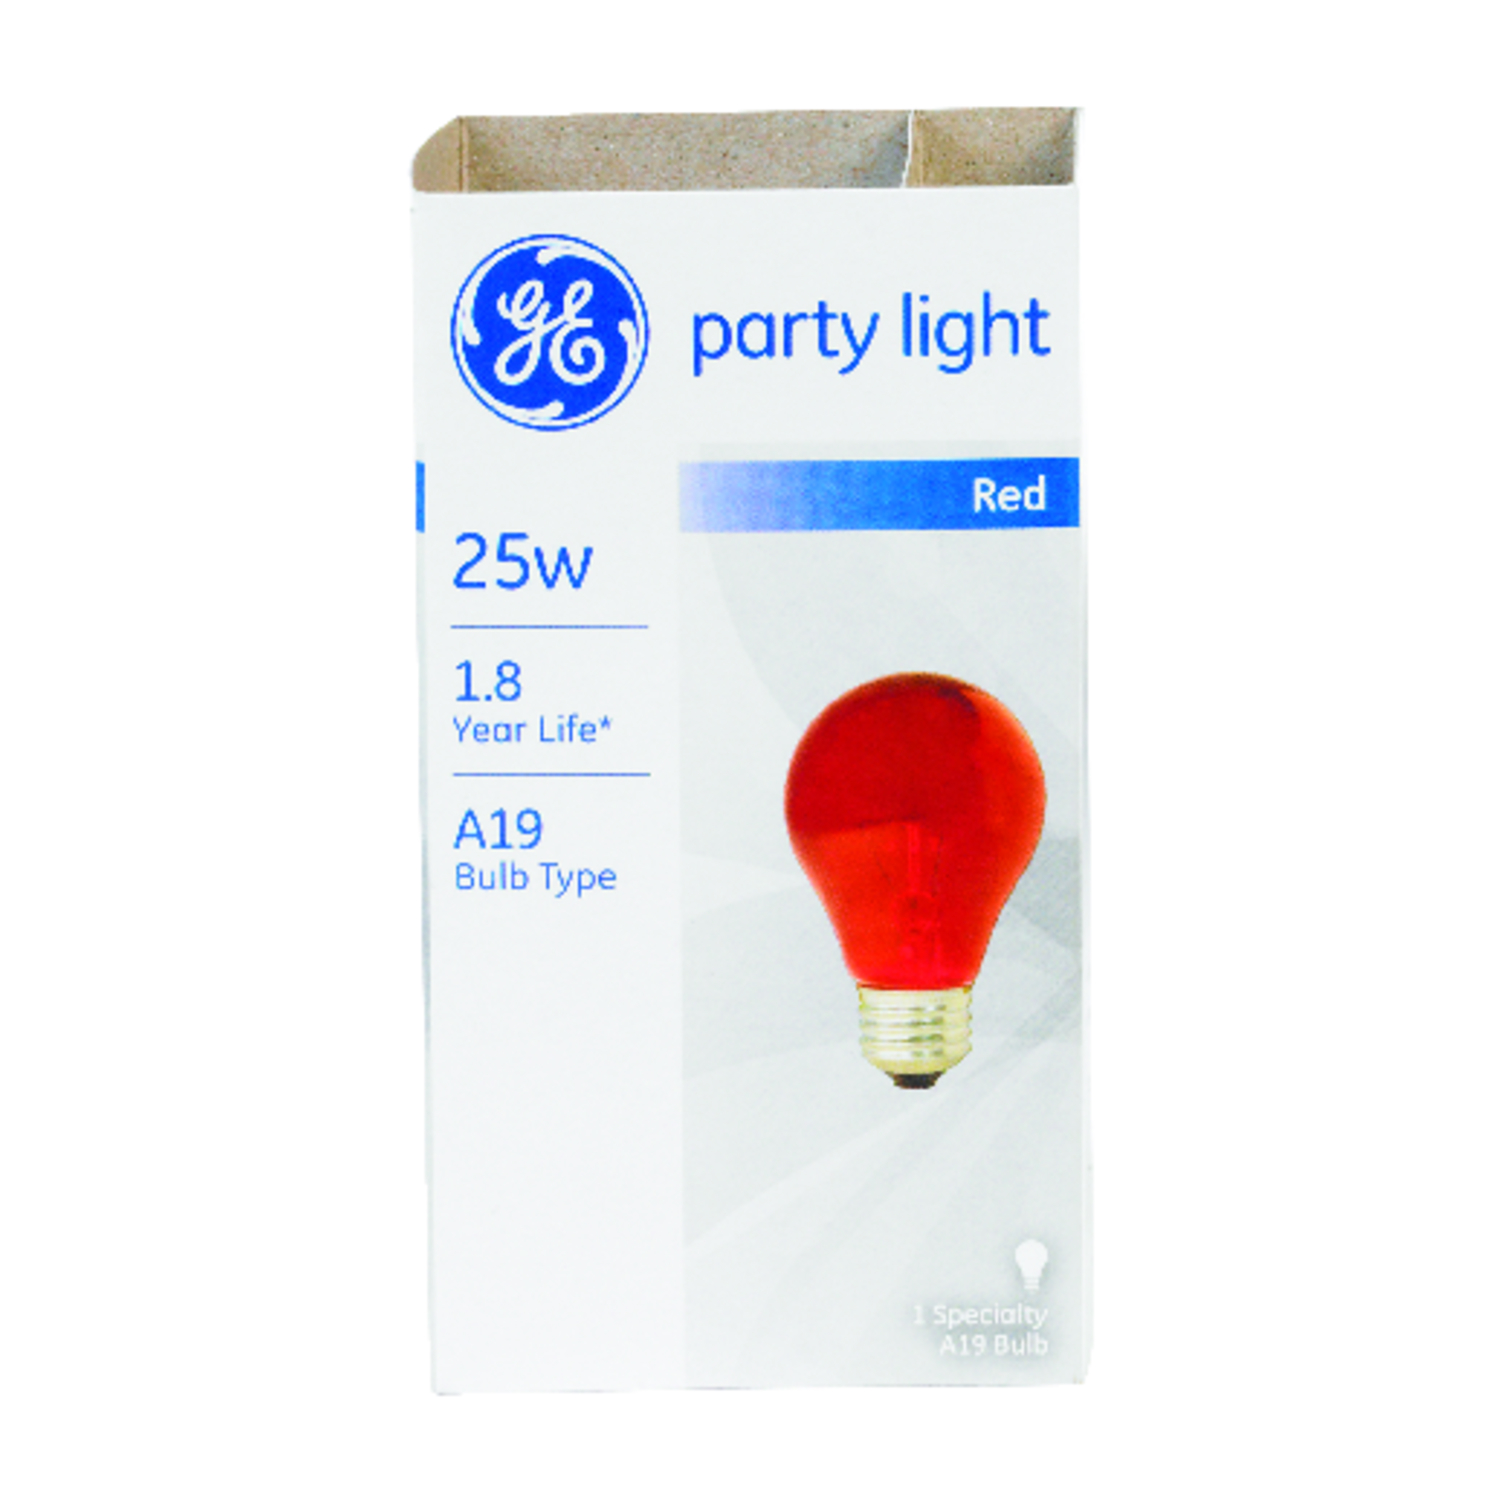 GE Lighting  party light  25 watts A19  Incandescent Bulb  200 lumens Red  A-Line  1 pk